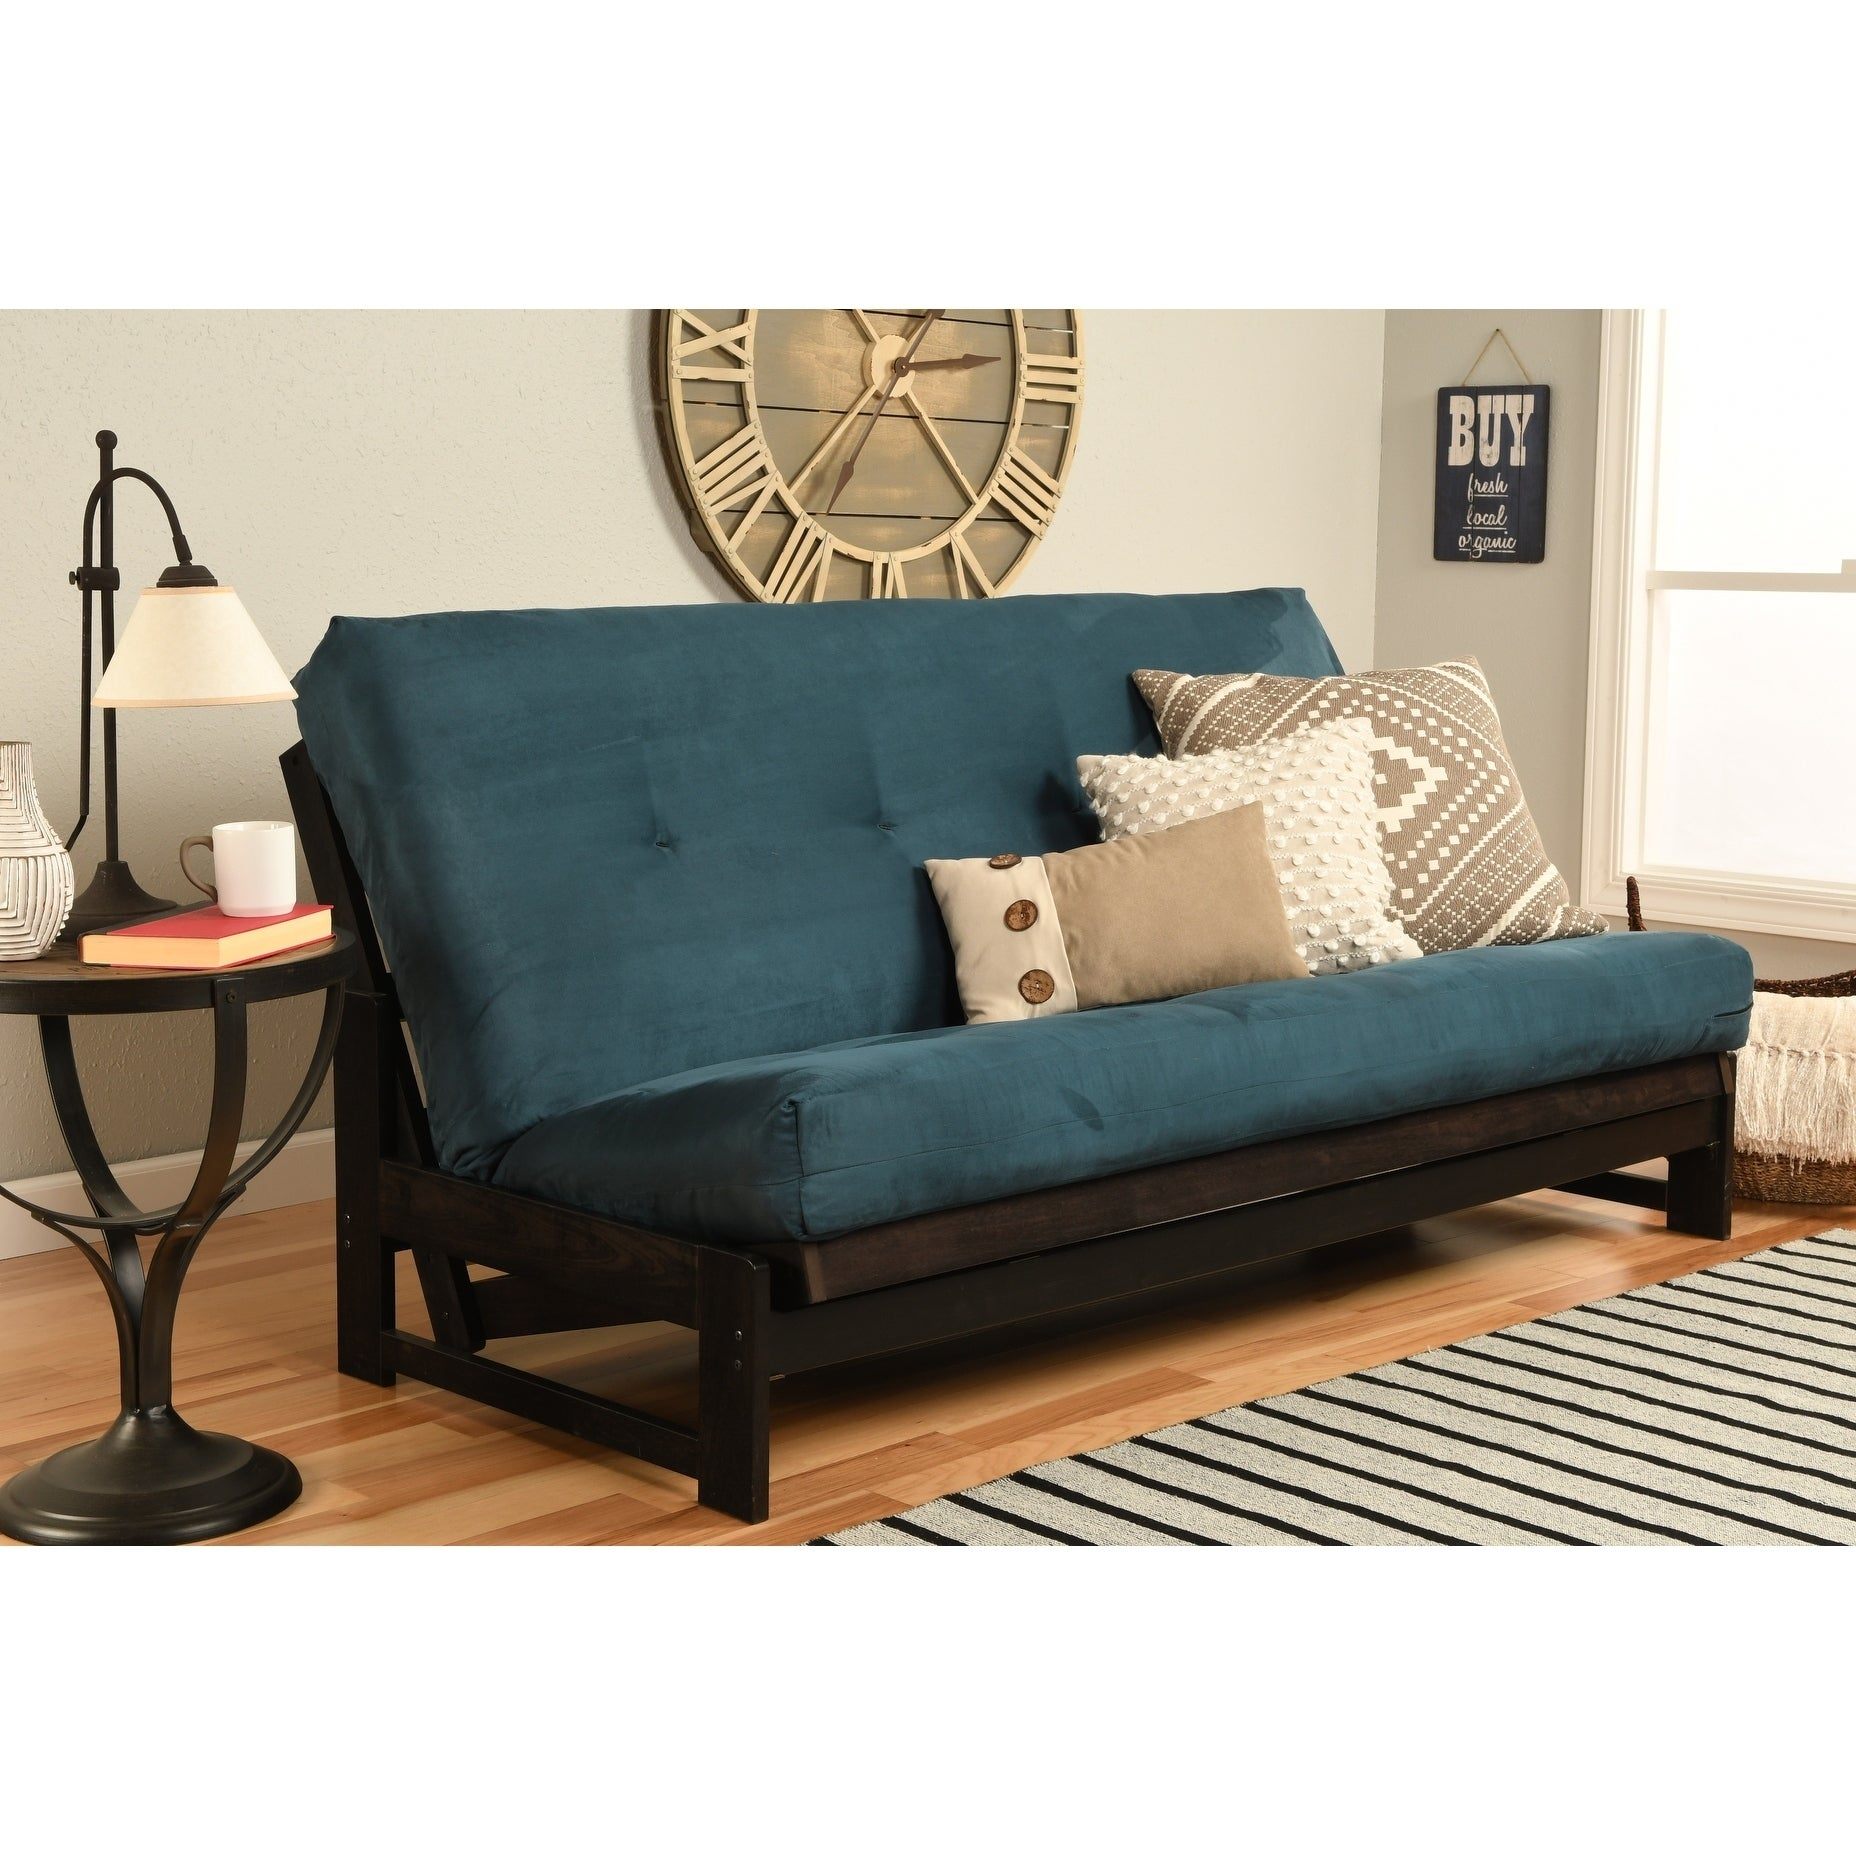 you size and never storage badcock futon have too because can queen bed futons mattress products much enzo frame set more